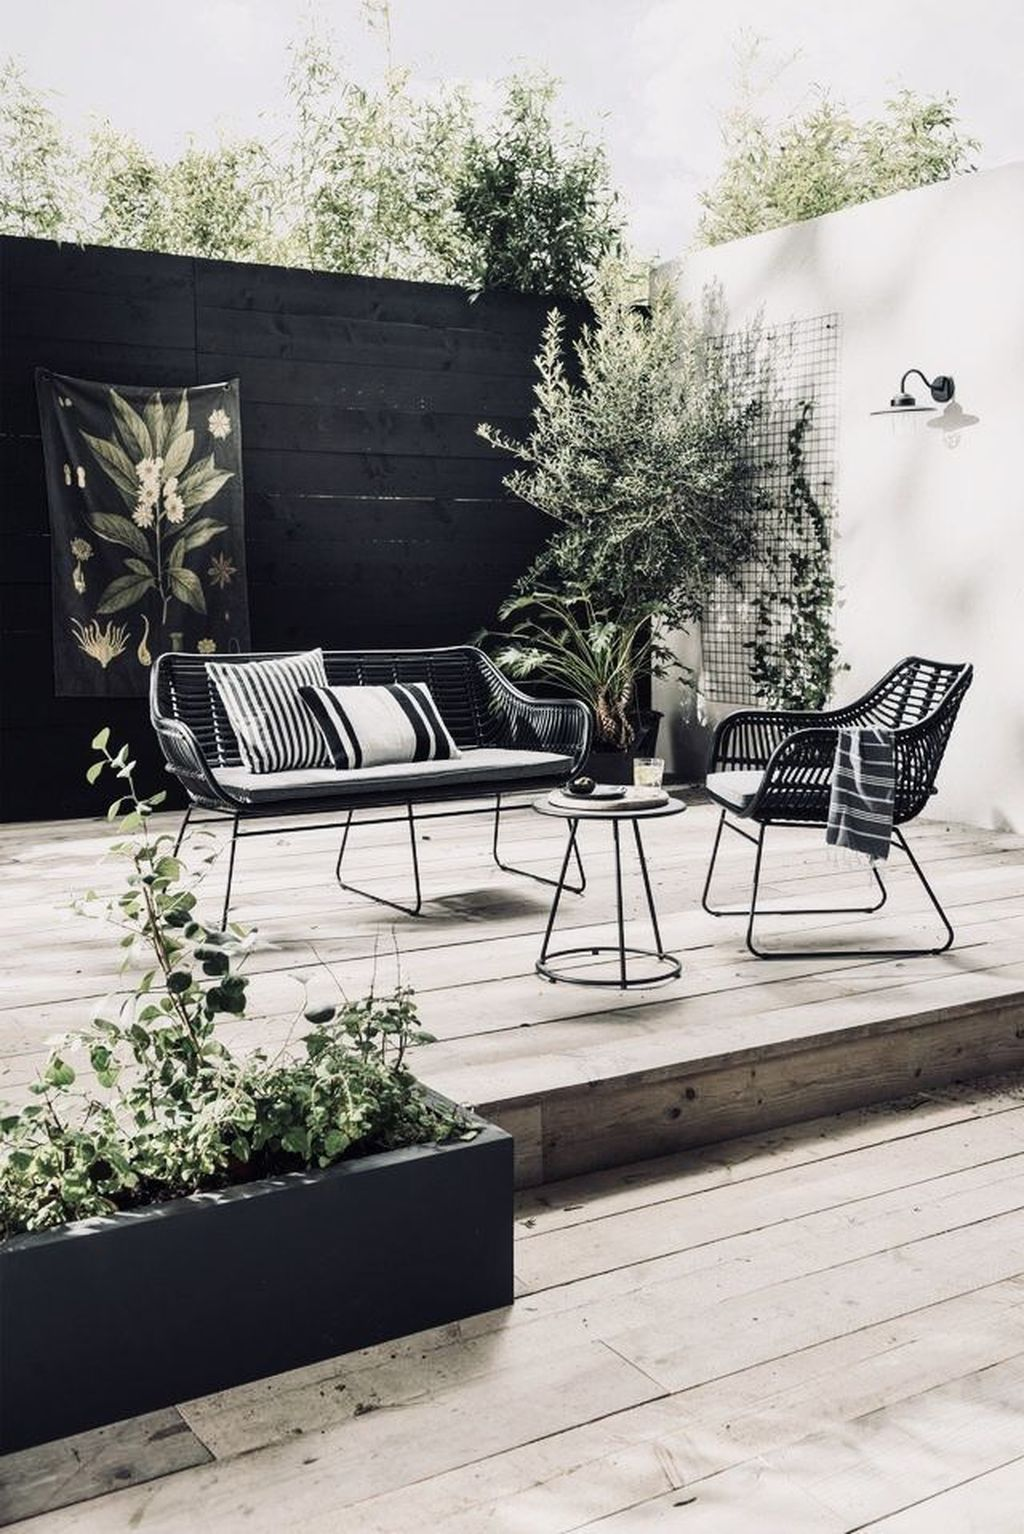 20 Magnificent Patio Furniture Ideas For Your Outdoor Garden Black Patio Furniture Modern Garden Furniture Metal Patio Furniture